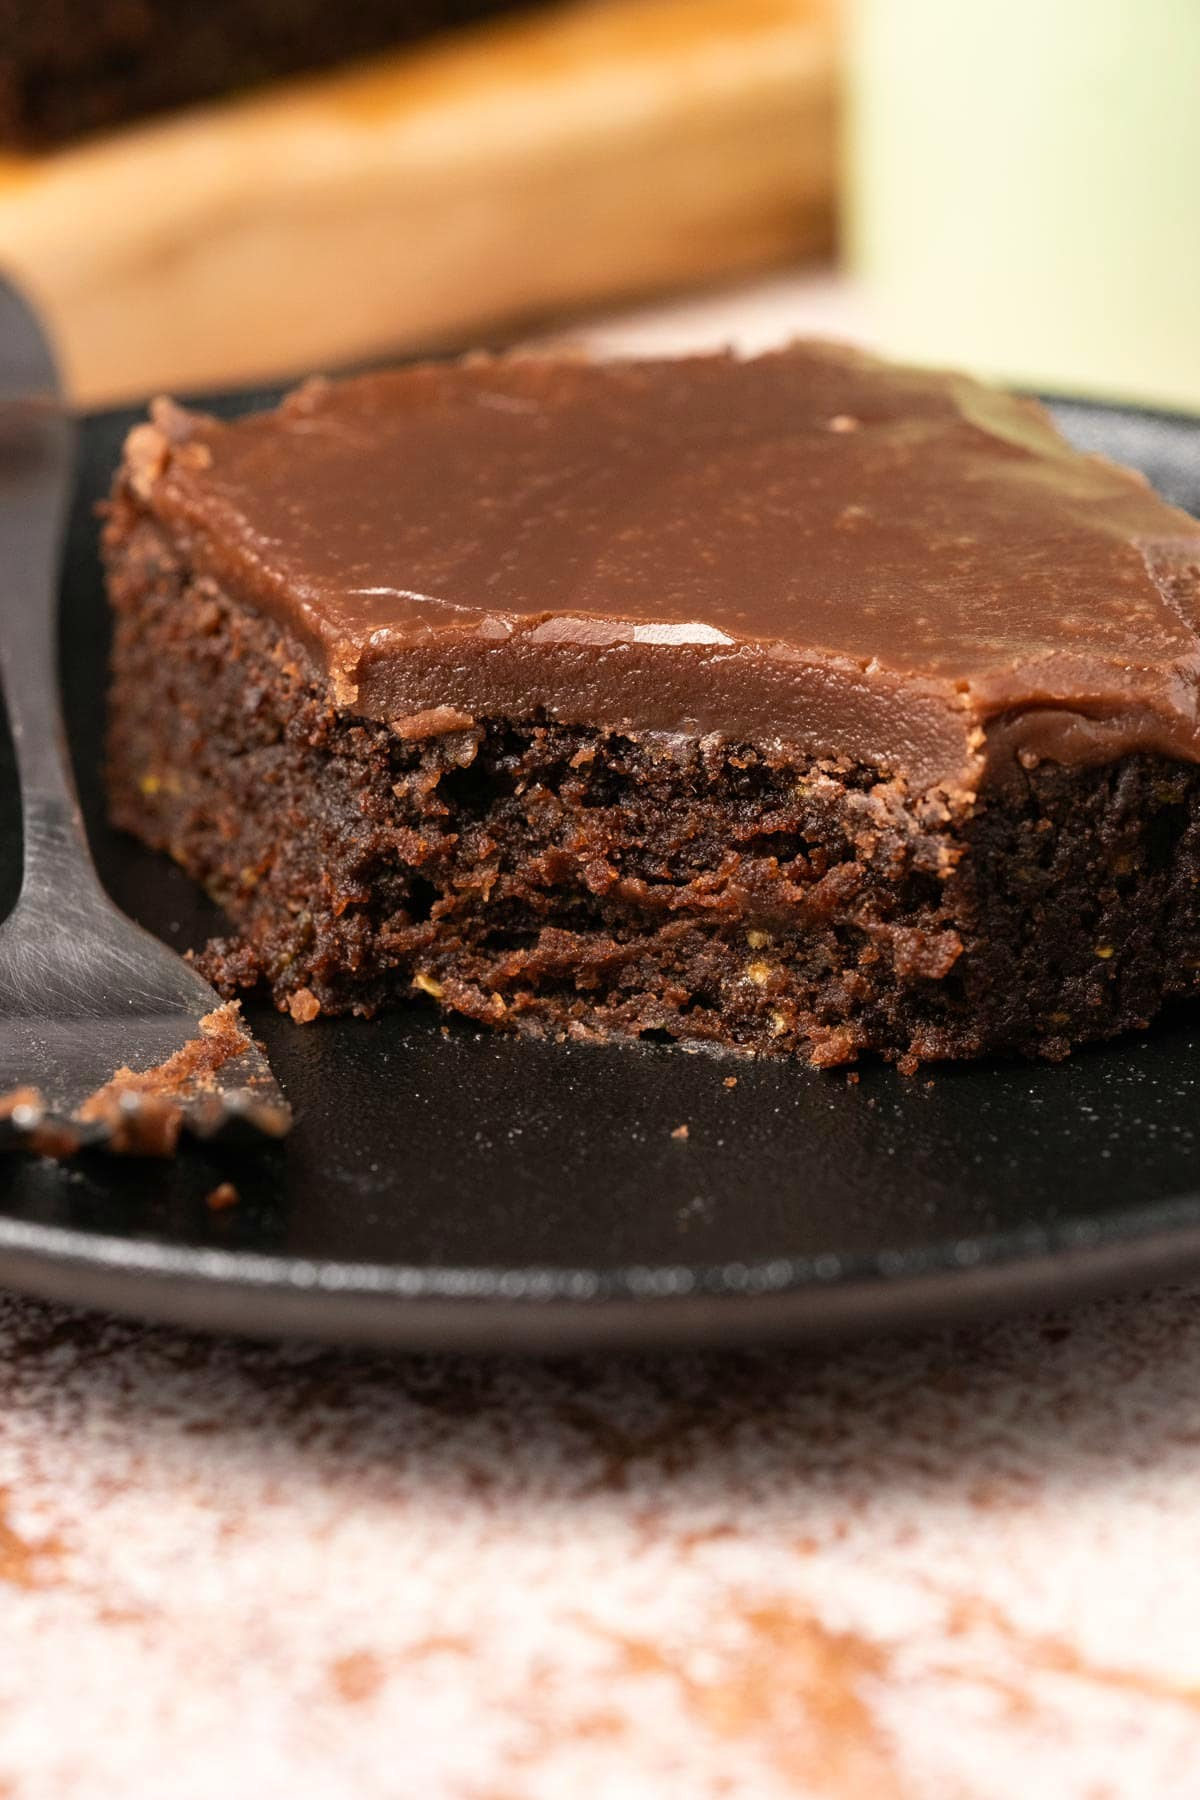 Zucchini brownie on a black plate with a cake fork.